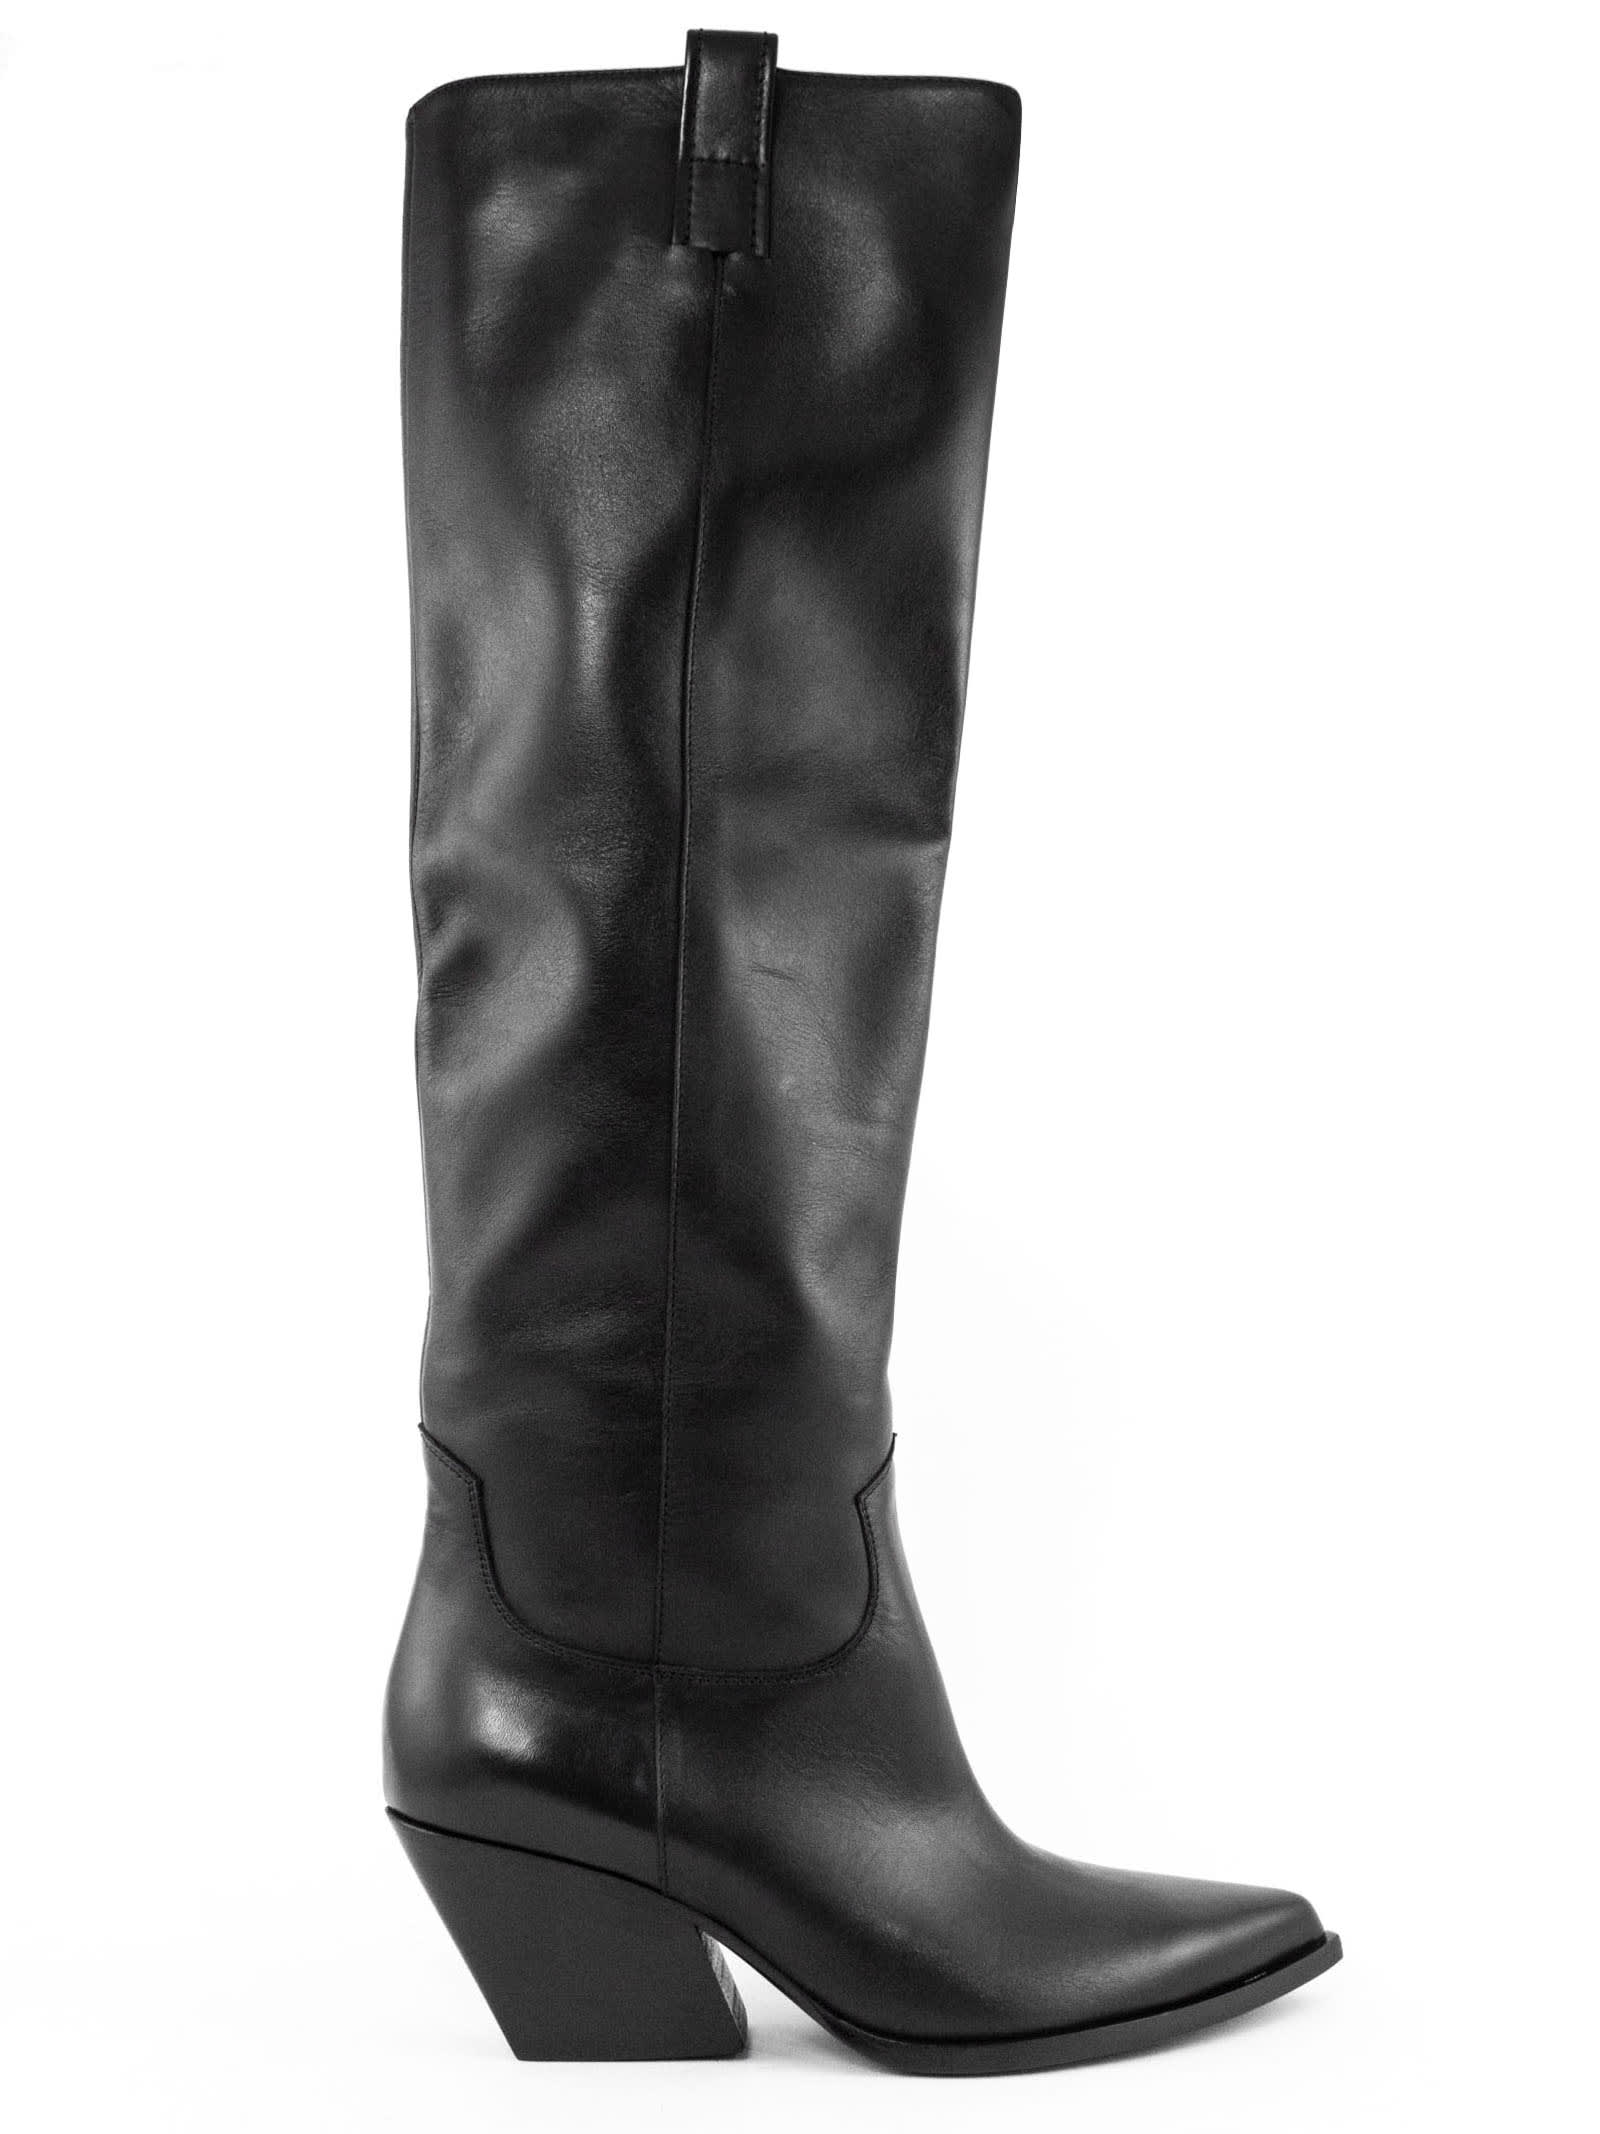 High Boot In Black Leather